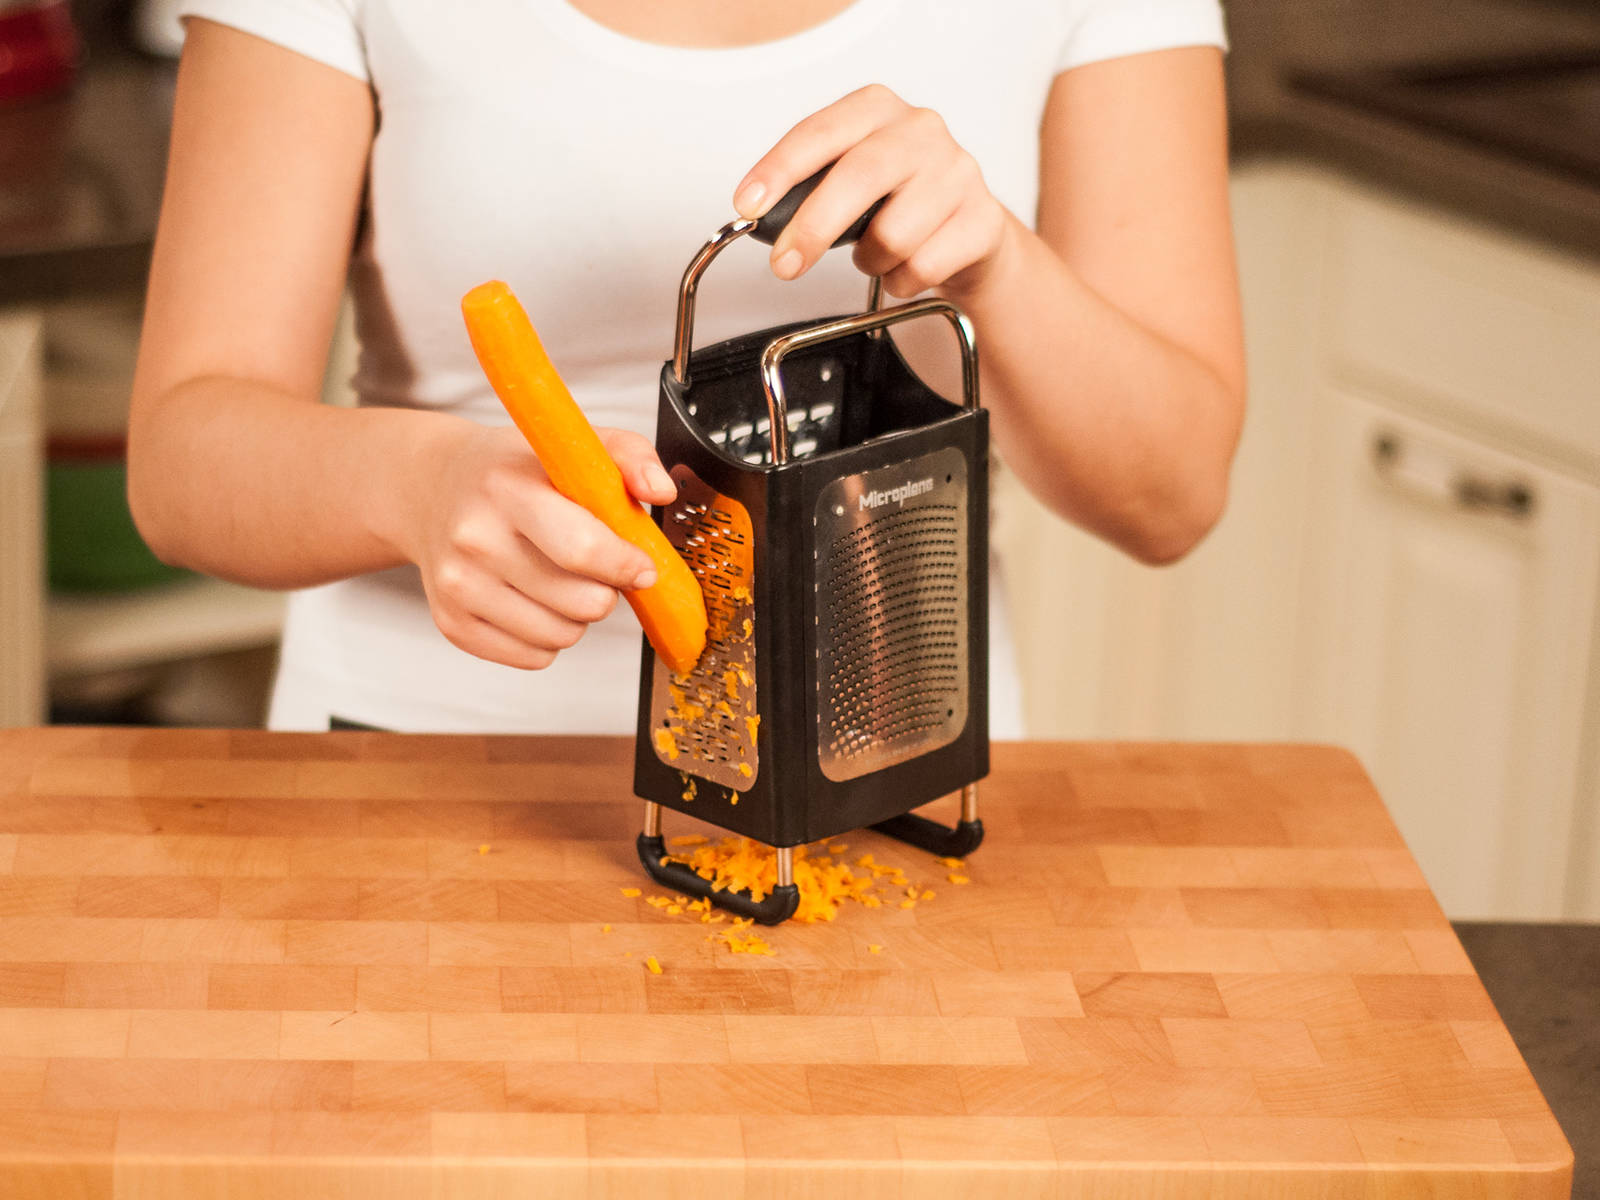 In the meantime, roughly grate carrot using a box grater.